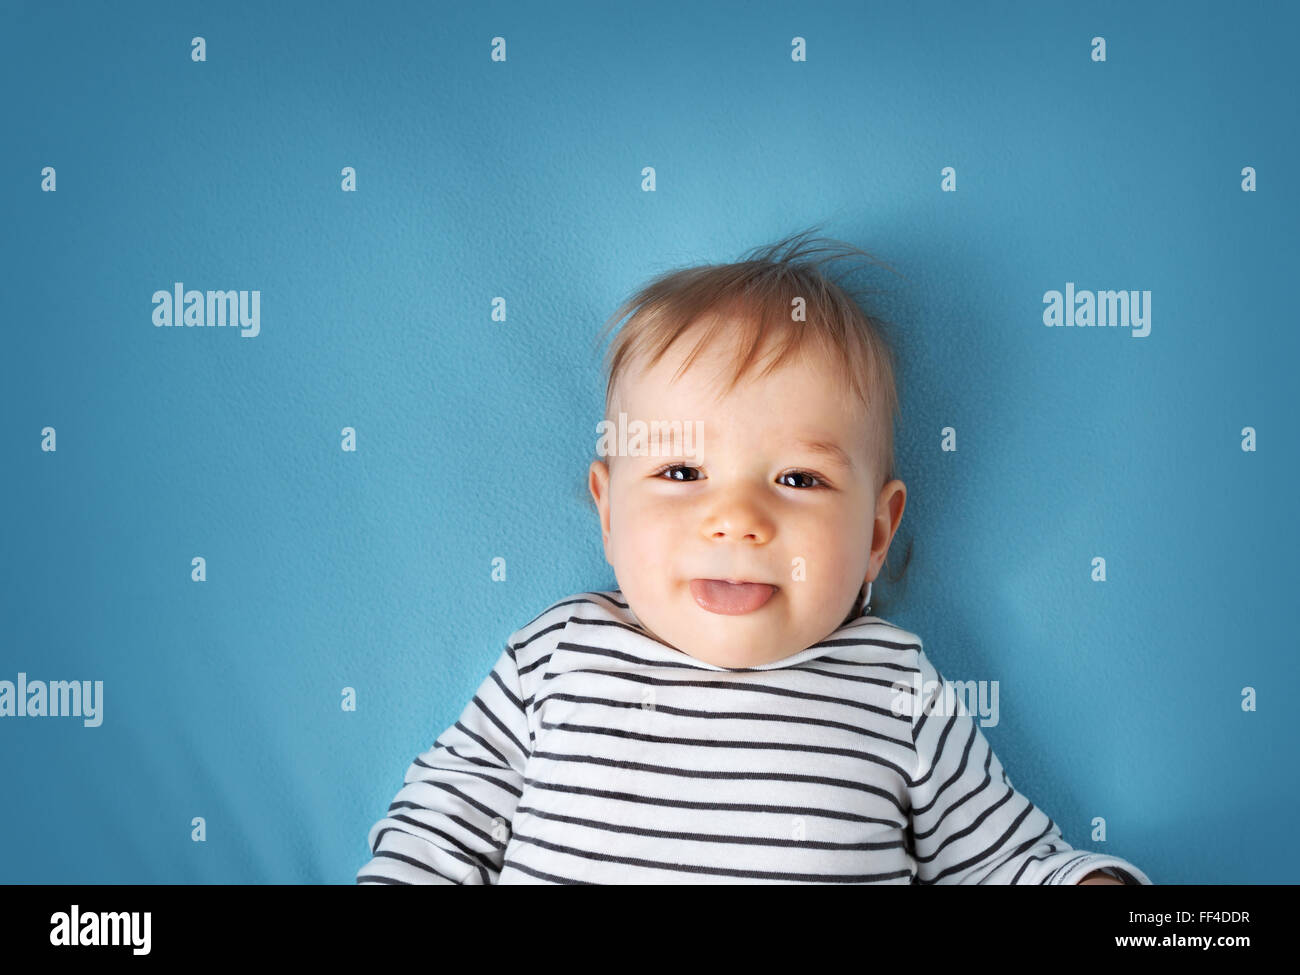 little boy on blue blanket background - Stock Image